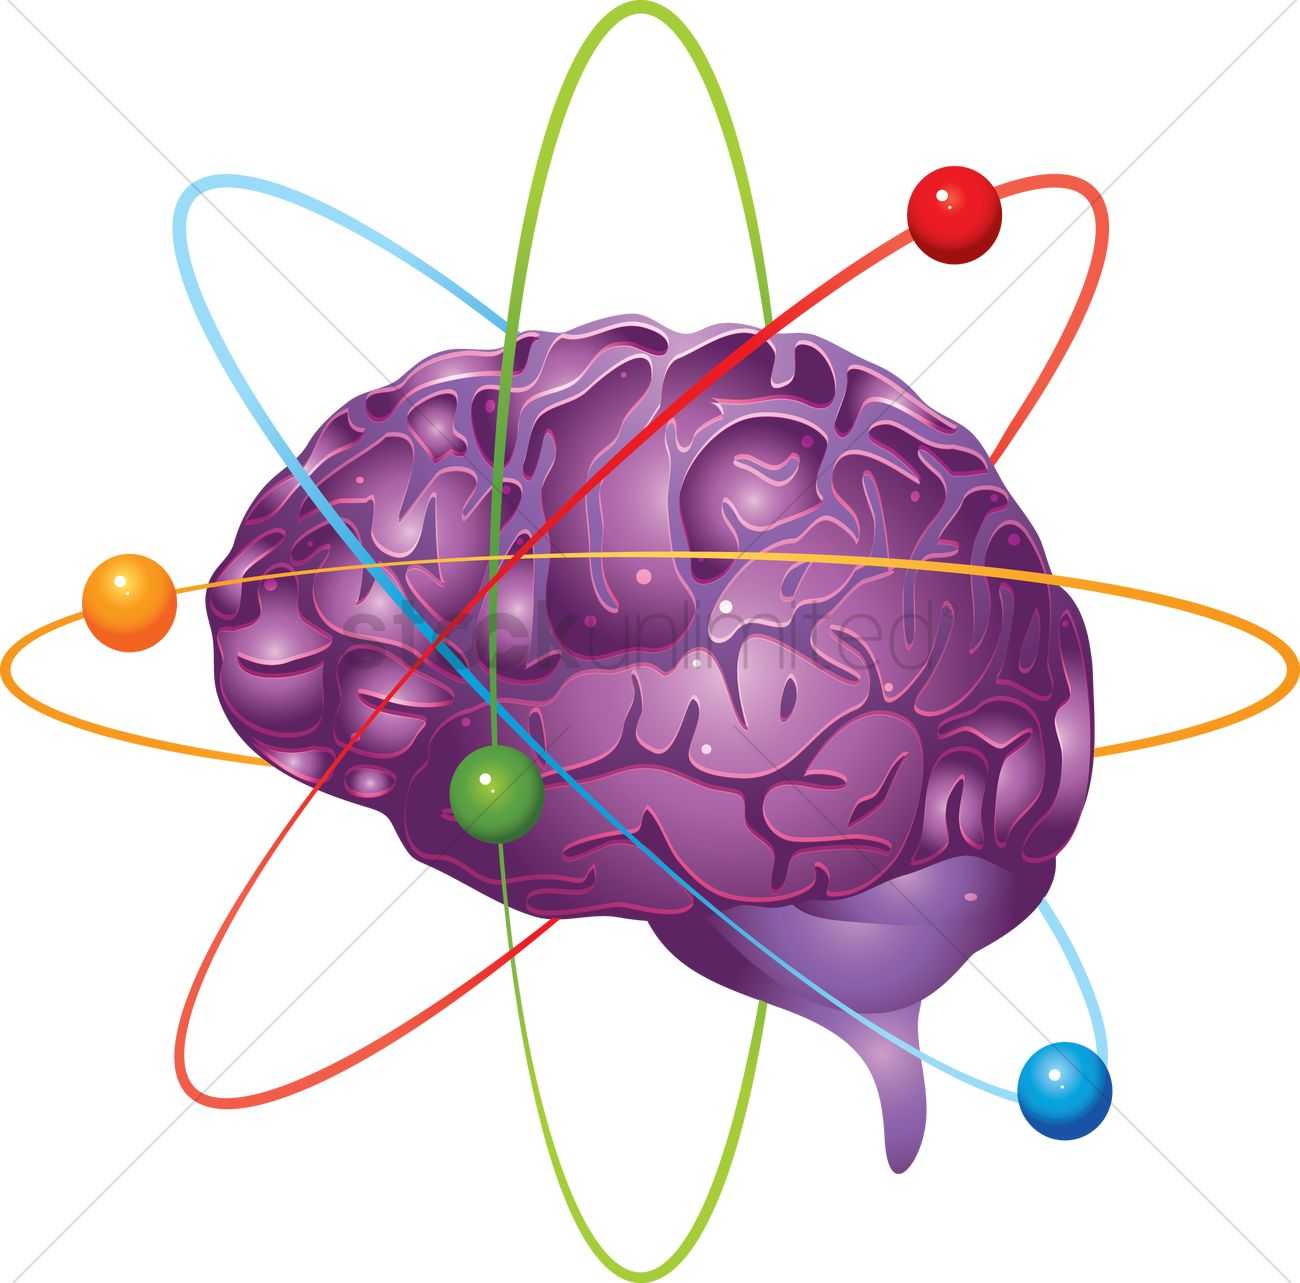 Free atom structure brain vector image 1238875 stockunlimited free atom structure brain vector graphic ccuart Image collections